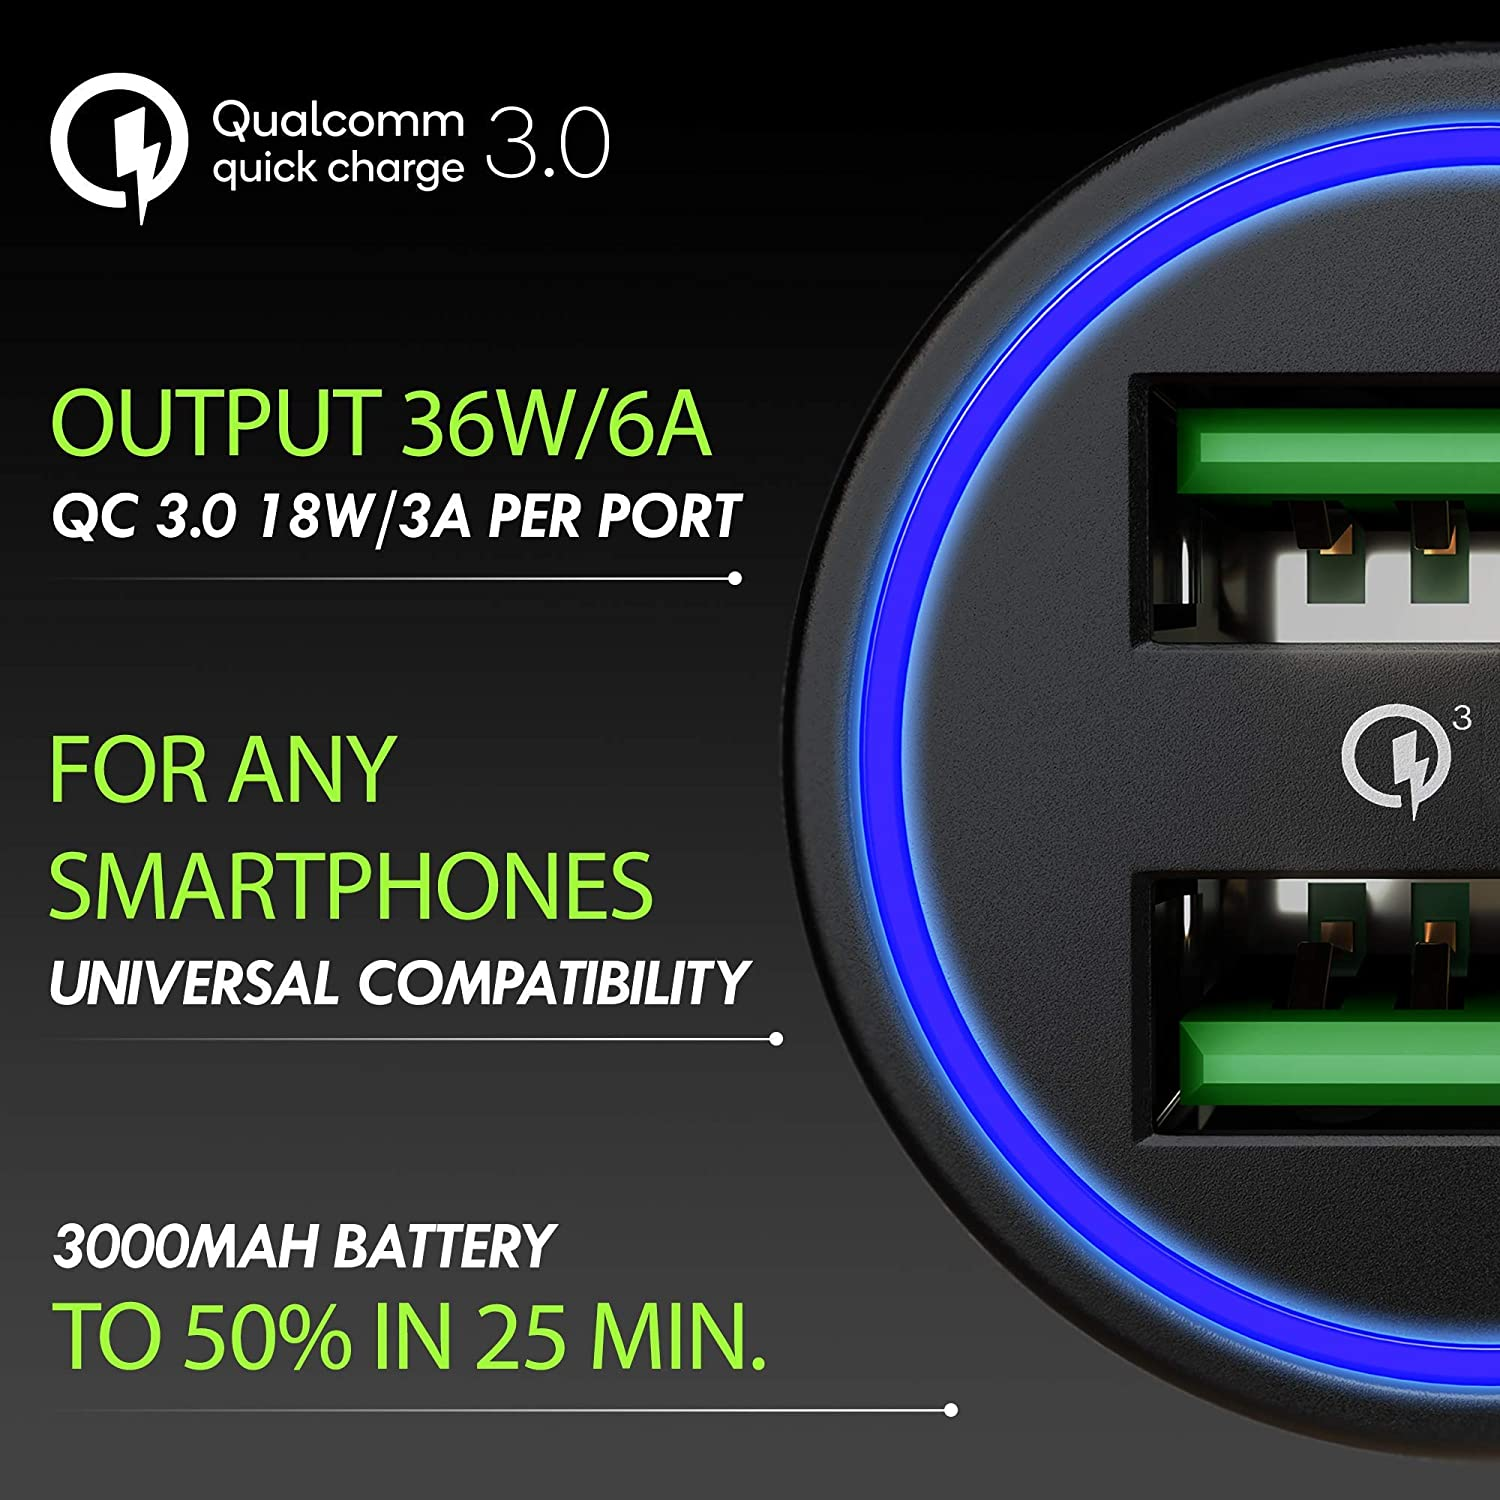 Compatible with Any iPhone Qualcomm Quick Charge 3.0 Dual USB 6A//36W Fast Car Charger Adapter Two Ports QC 3.0 3A Galaxy S10 S9 S8 S7 Note LG Nexus etc. 2019 Metal Car Charger by MONGOORA